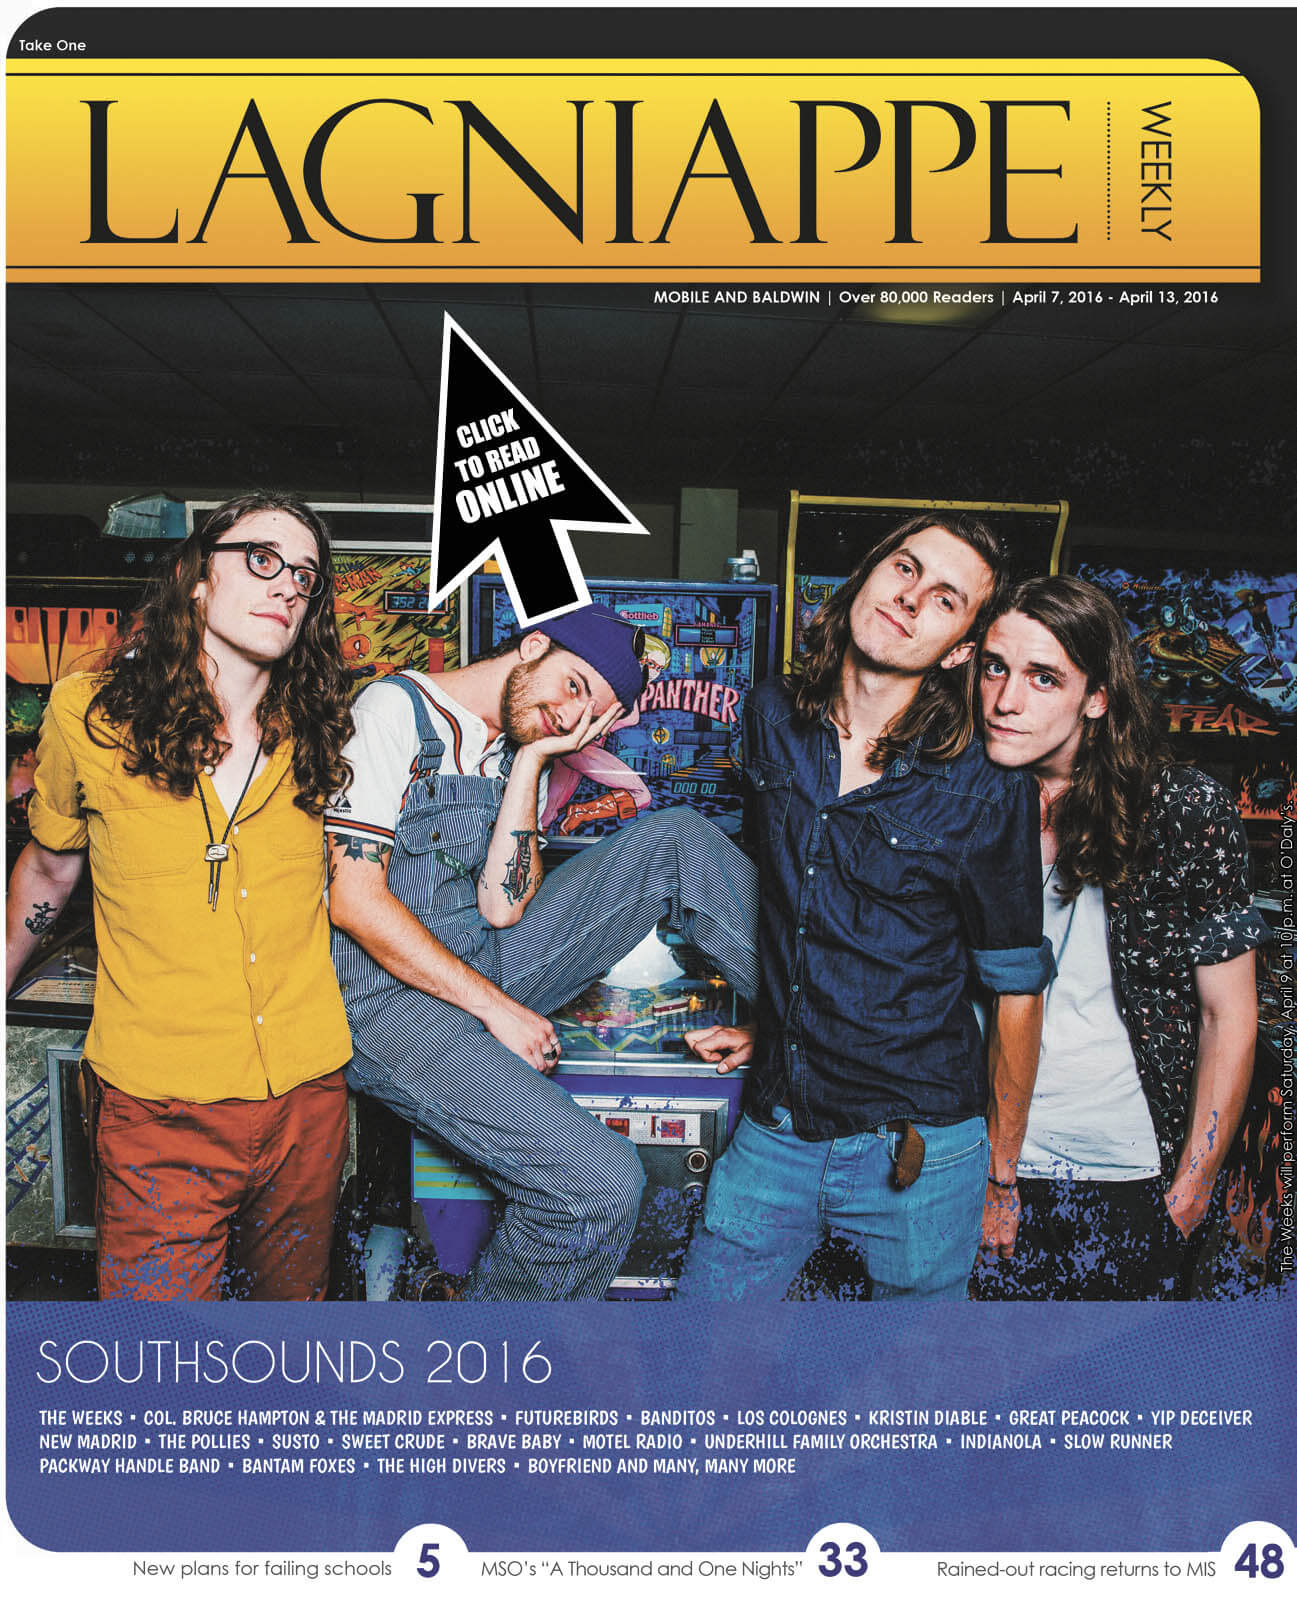 Lagniappe: April 7 -13, 2016